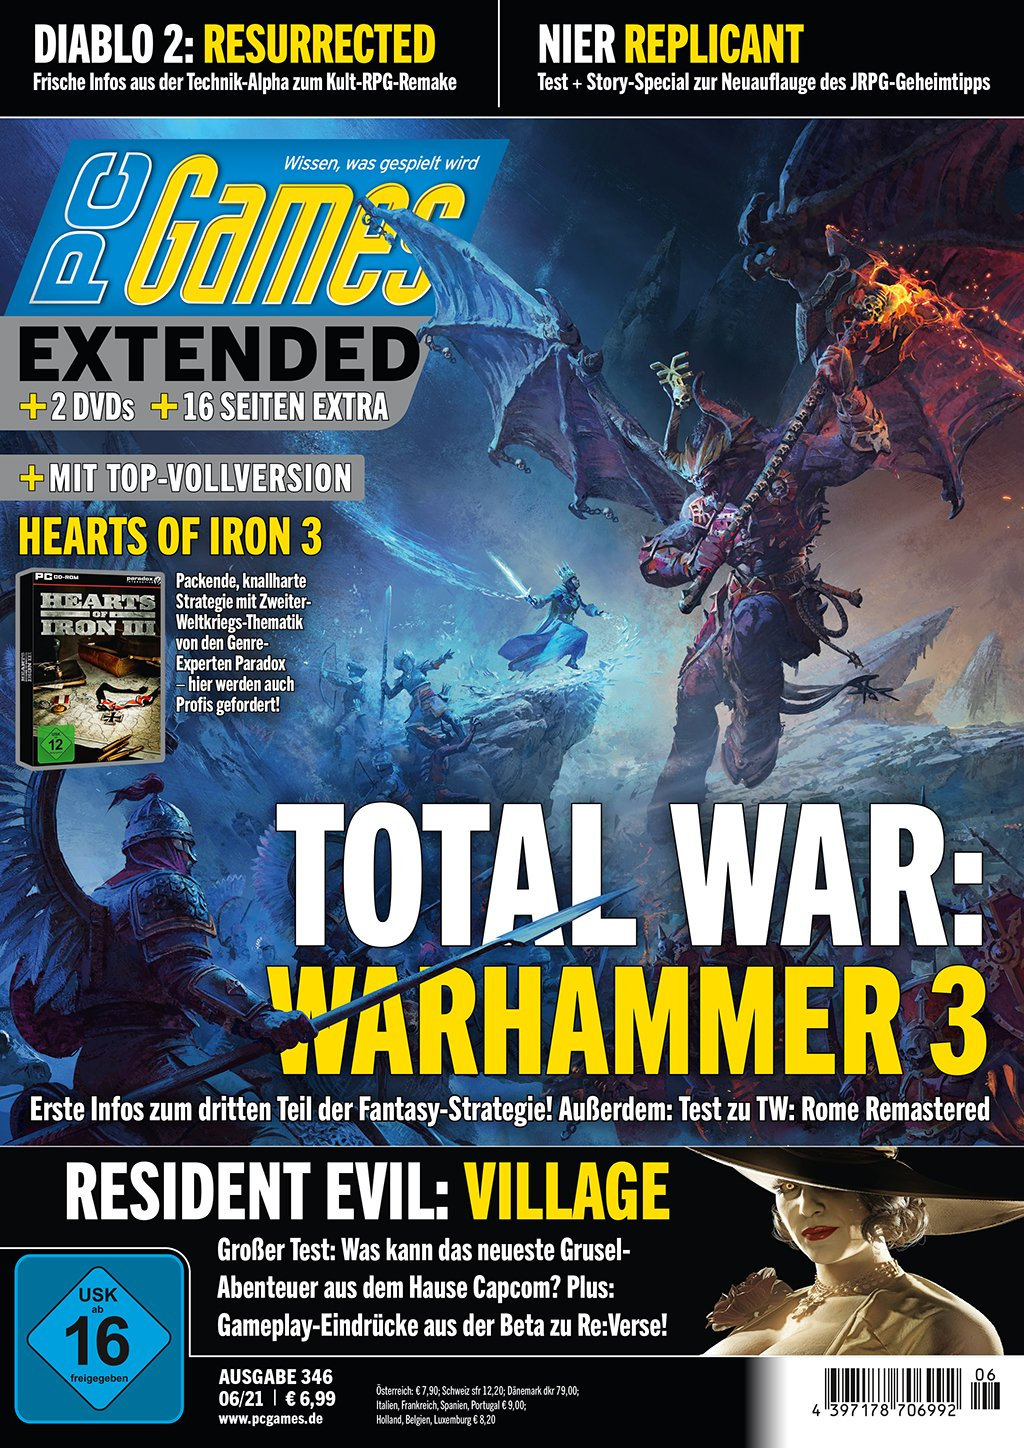 PC Games 06/21 with Total War: Warhammer 3, Resident Evil: Village and much more. m.